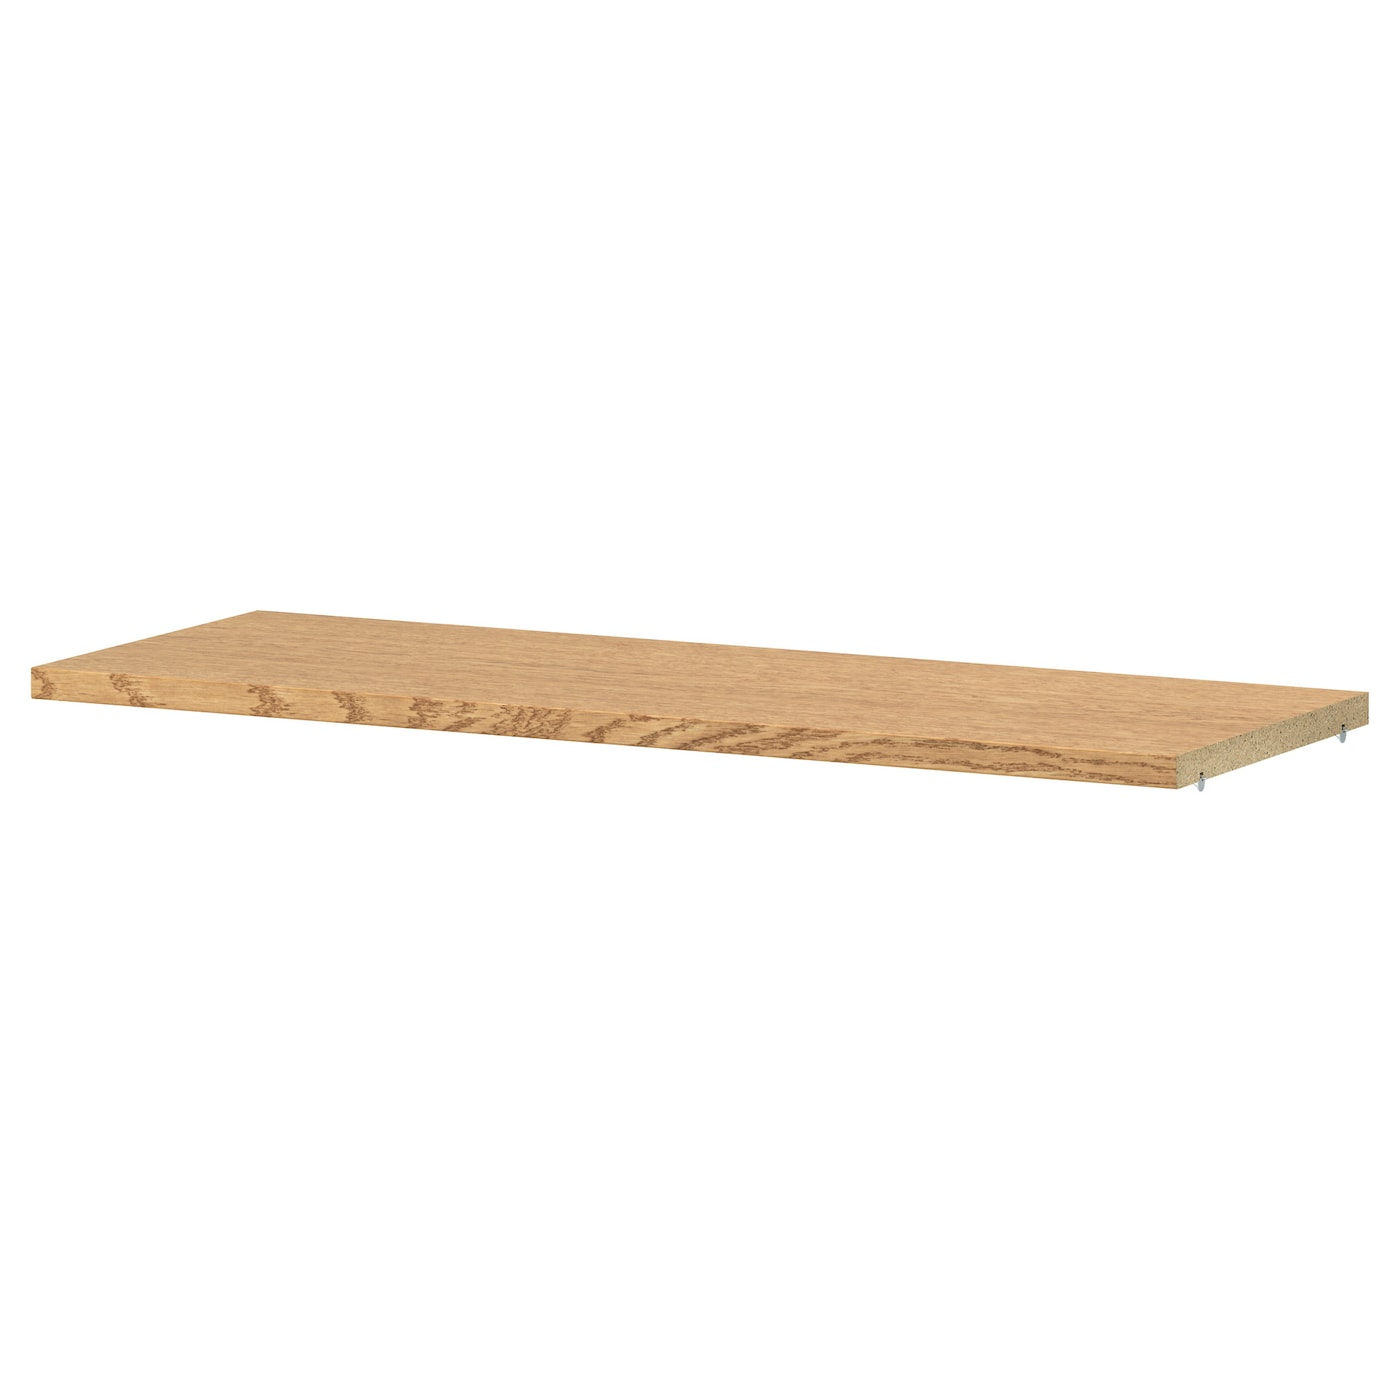 Minnen Toddler Bed From Ikea ~ IKEA BILLY extra shelf Surface made from natural wood veneer